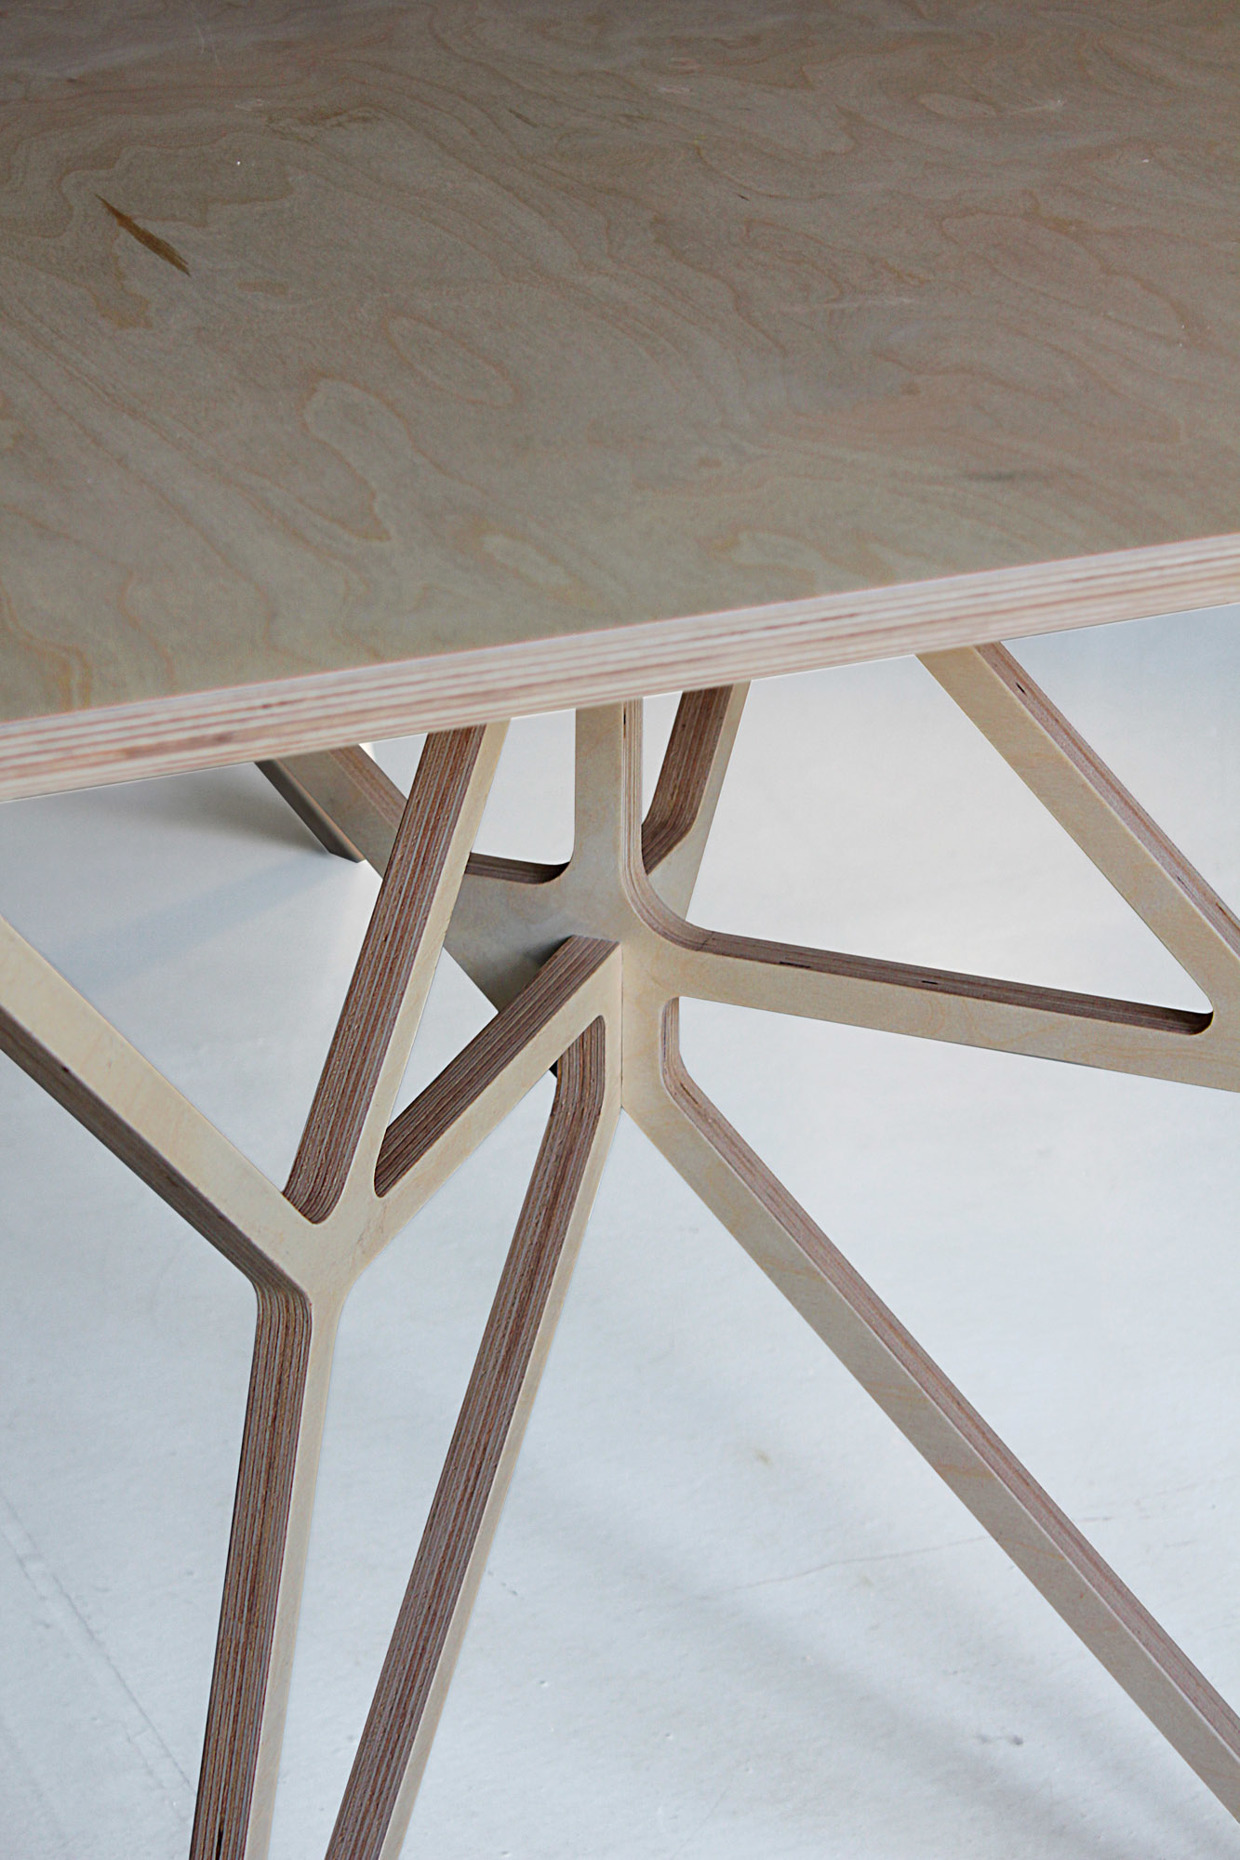 Furniture_P01_Plywood-dontDIY-9